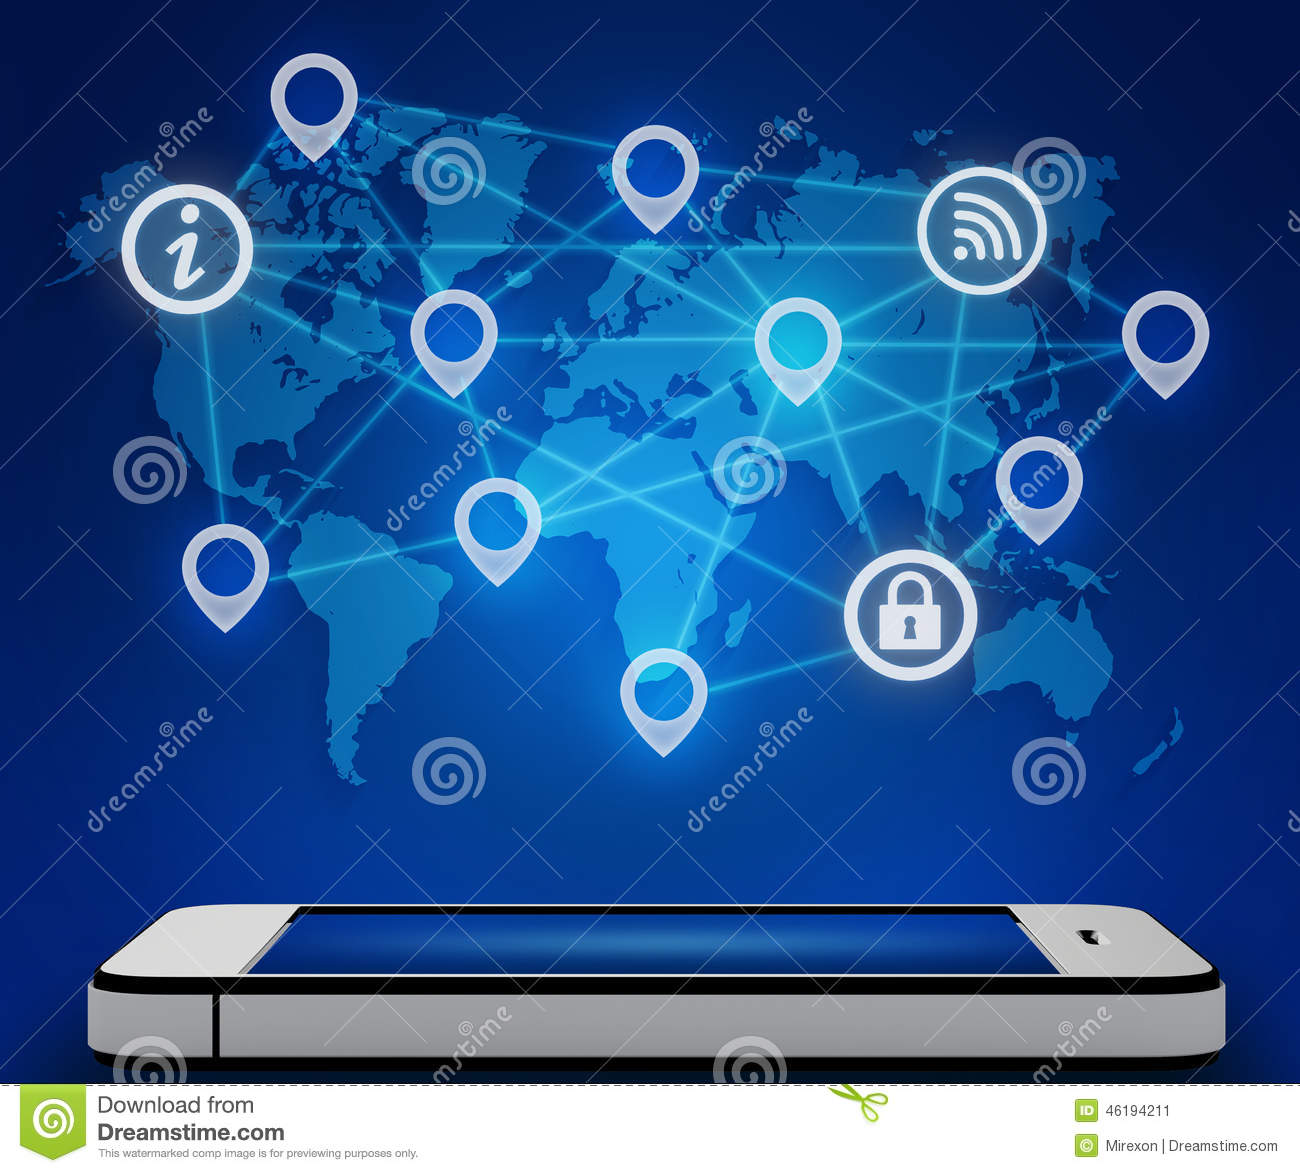 Mobile phone and a world map with connection icon stock illustration royalty free illustration download mobile phone and a world map with connection icon stock illustration illustration of mobile publicscrutiny Choice Image